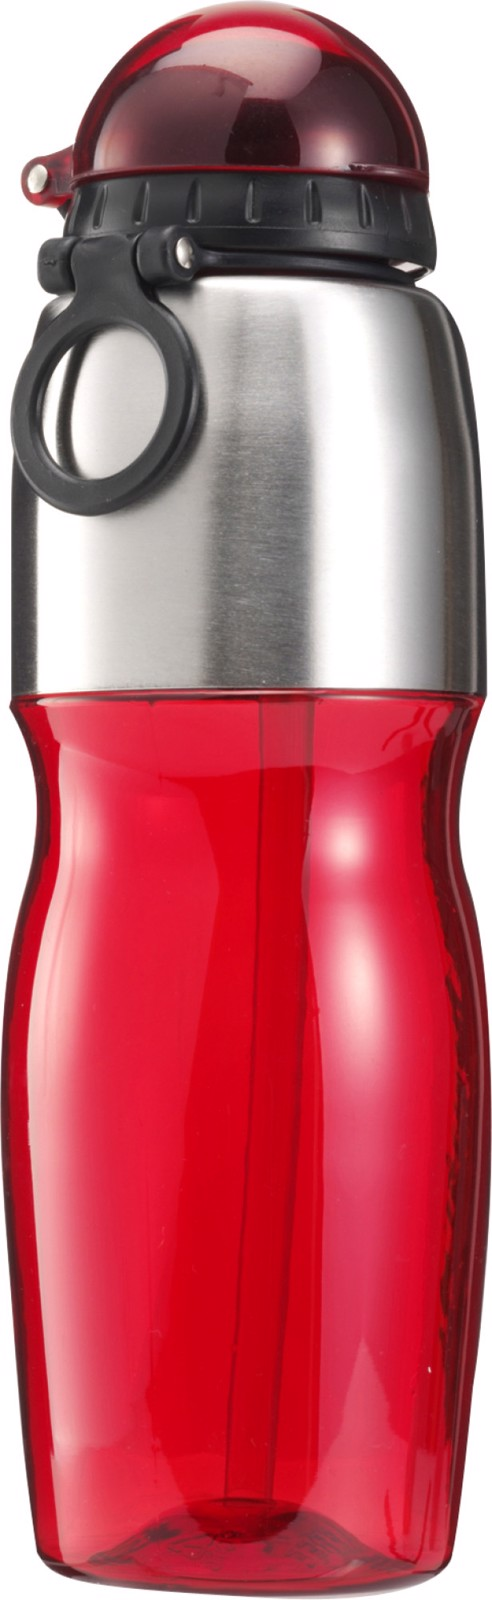 PS and stainless steel bottle - Red